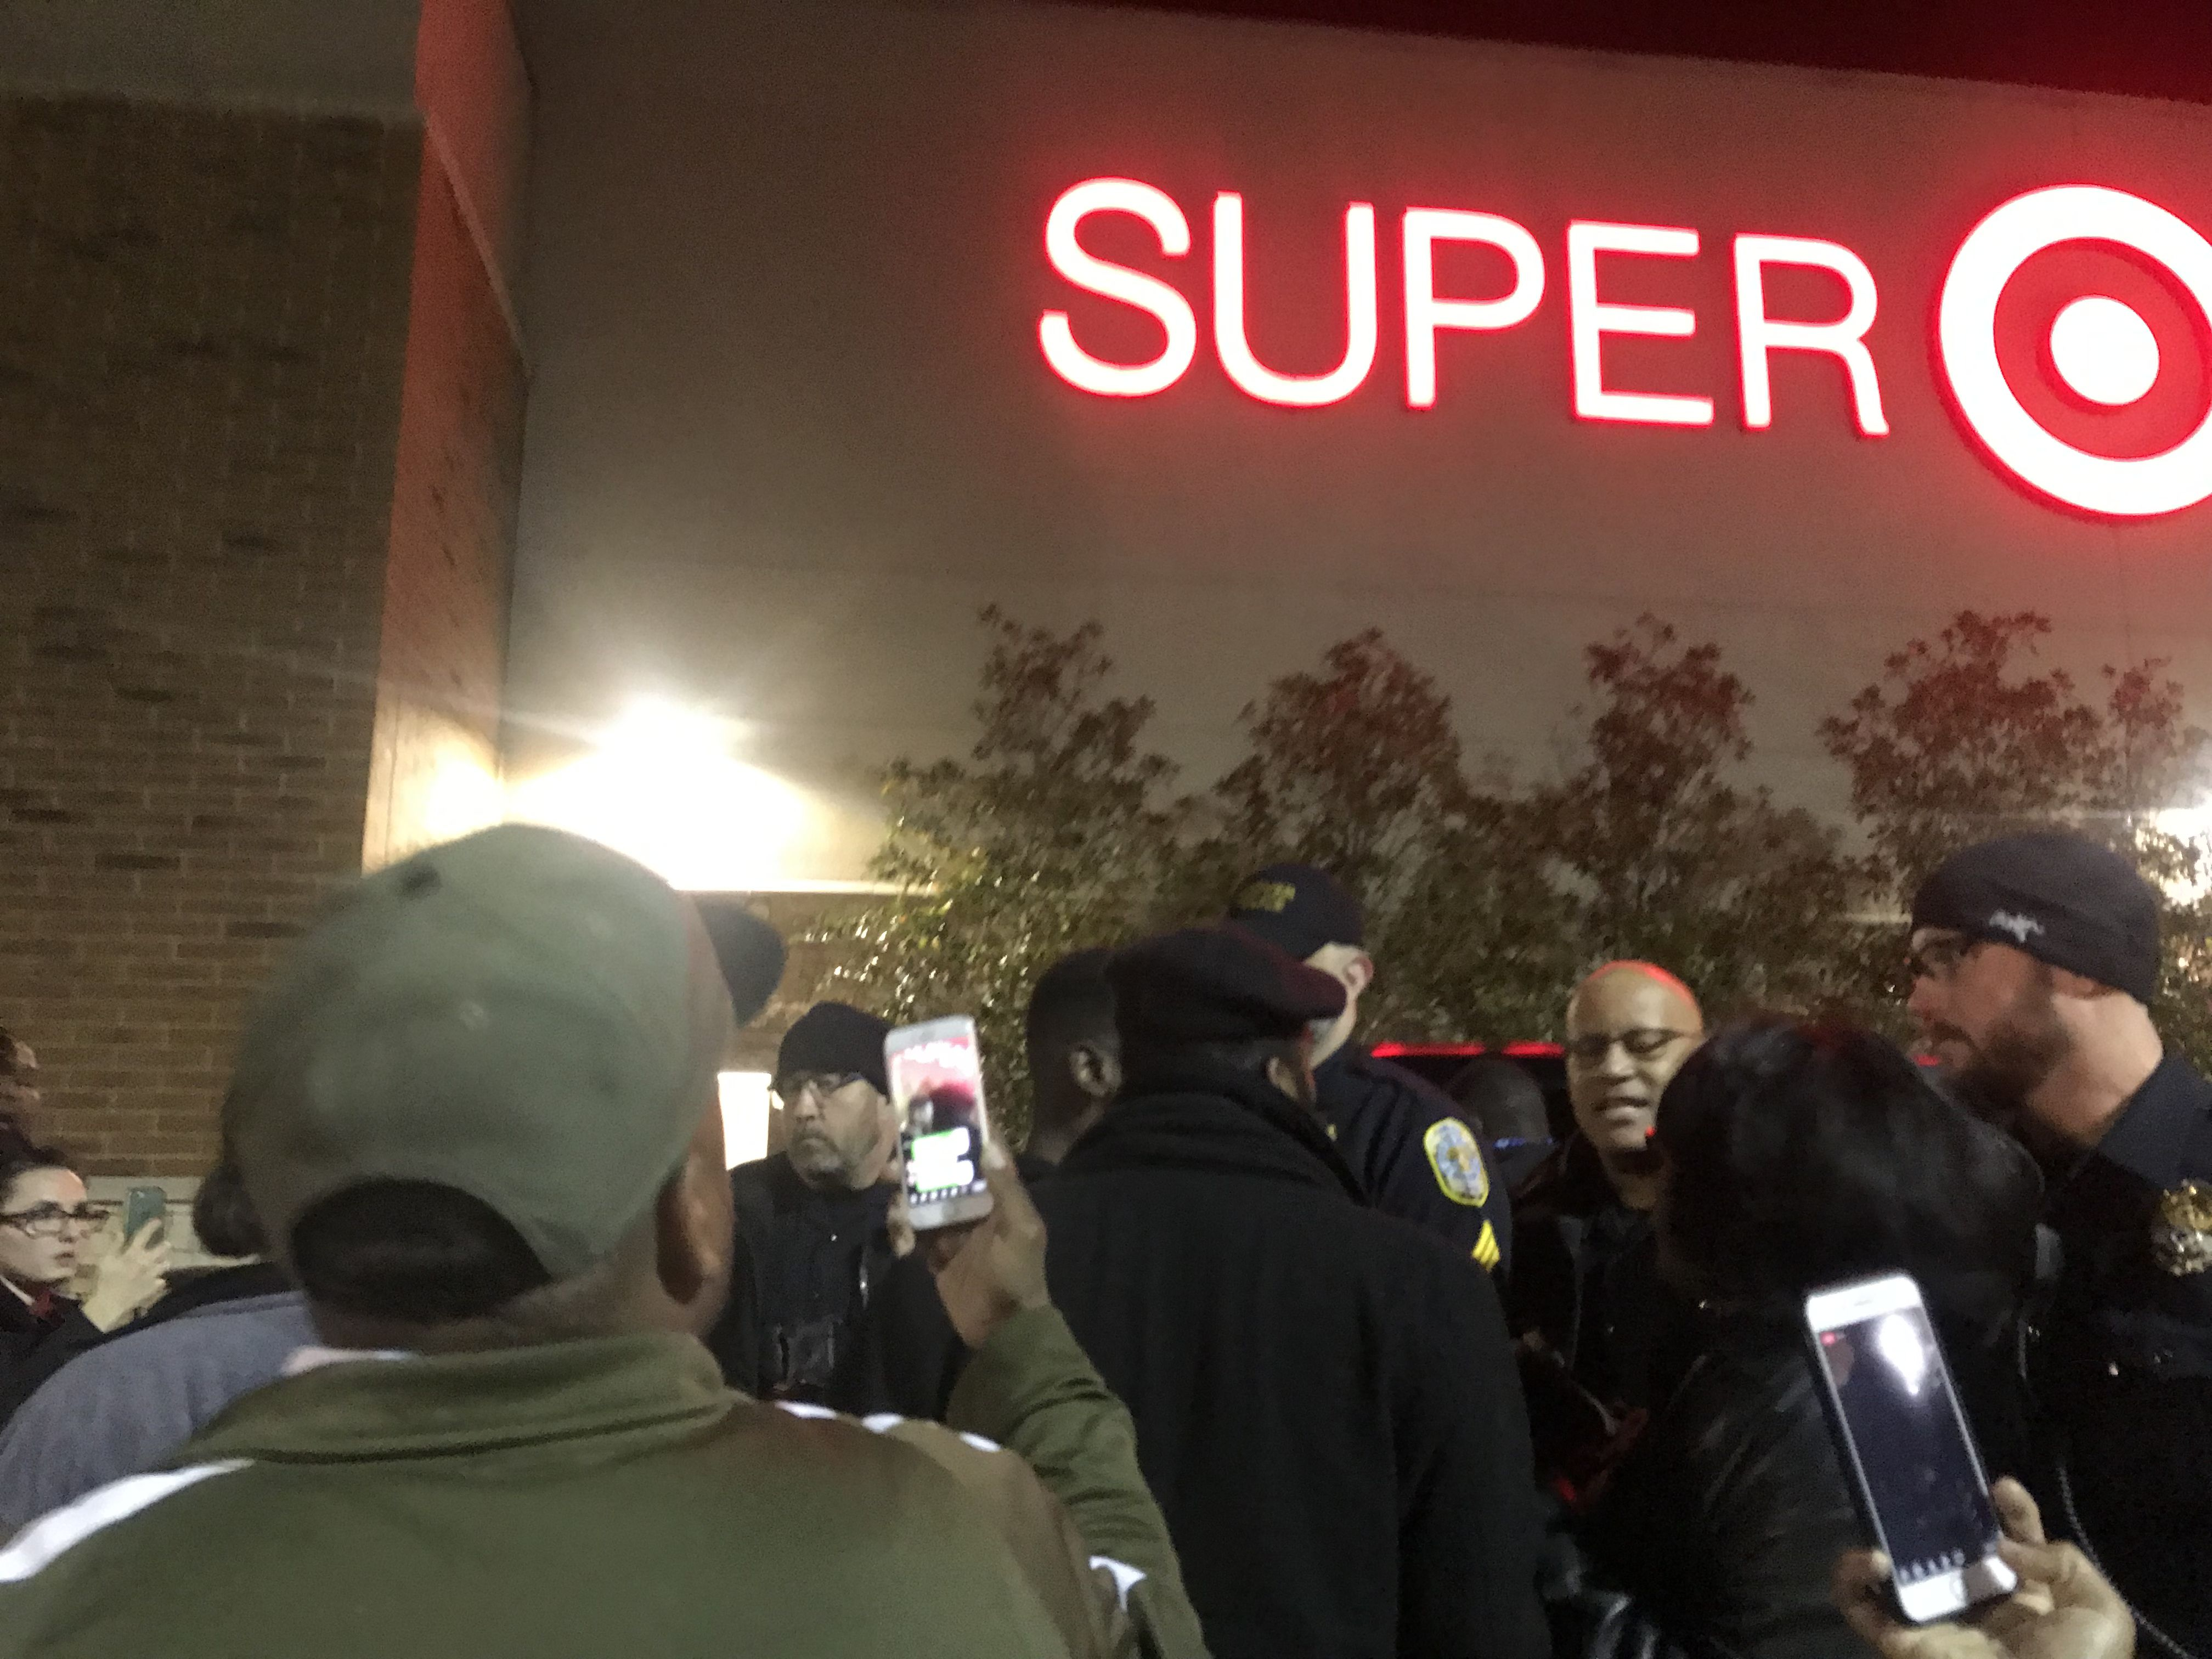 6th person arrested as latest Galleria shooting protest reaches